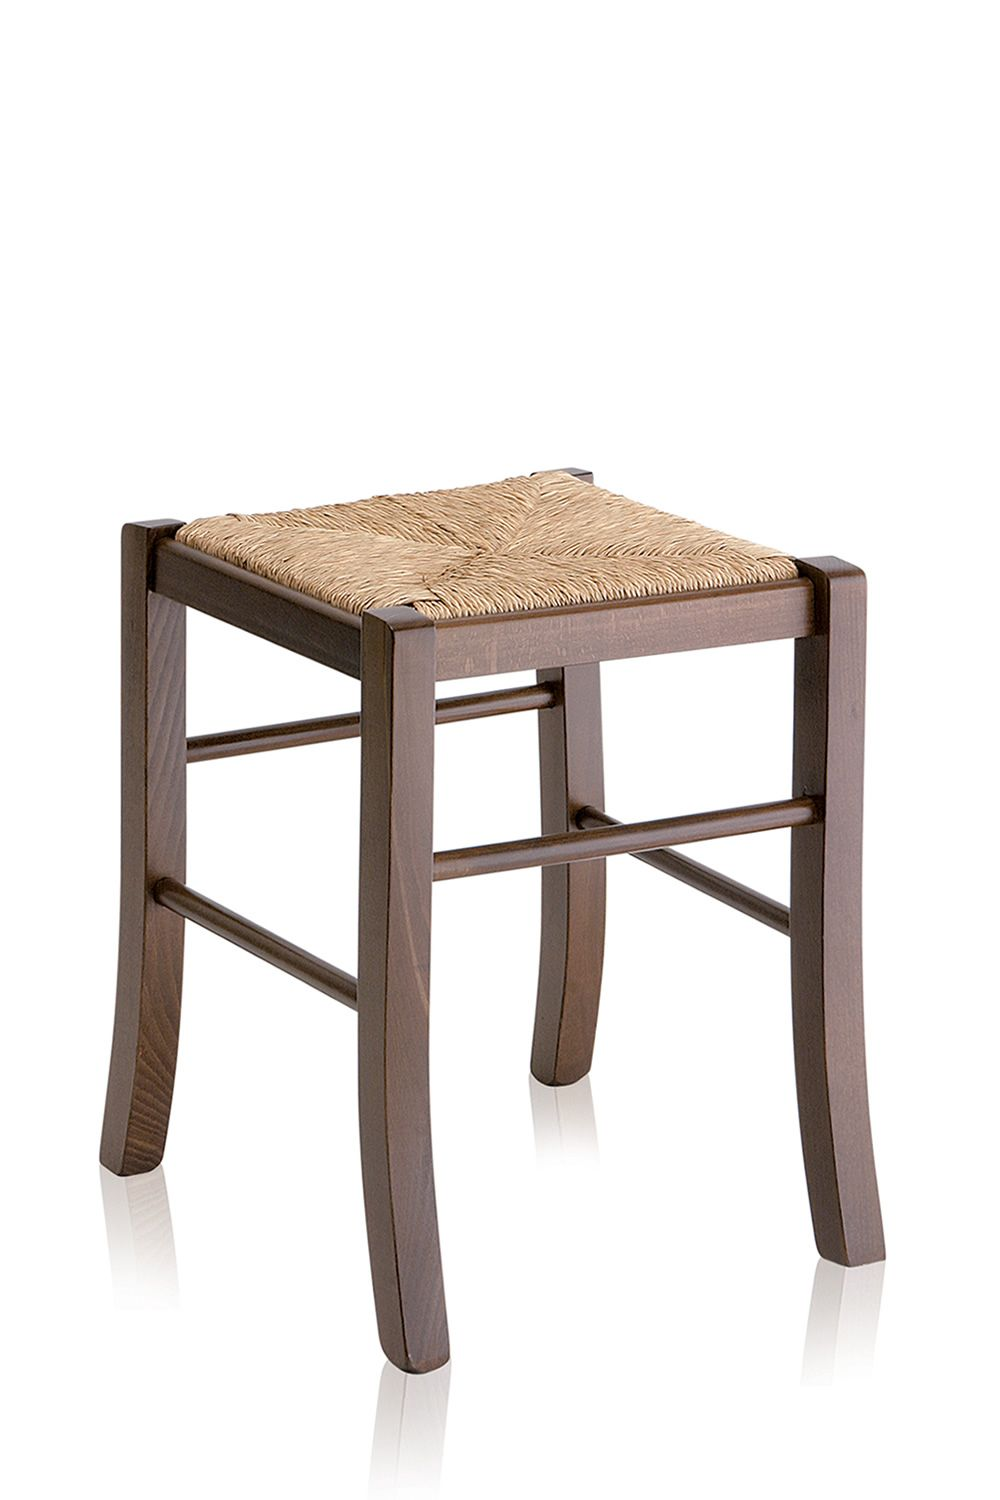 Mu70 Basso Country Style Low Stool In Wood Height 47 Cm